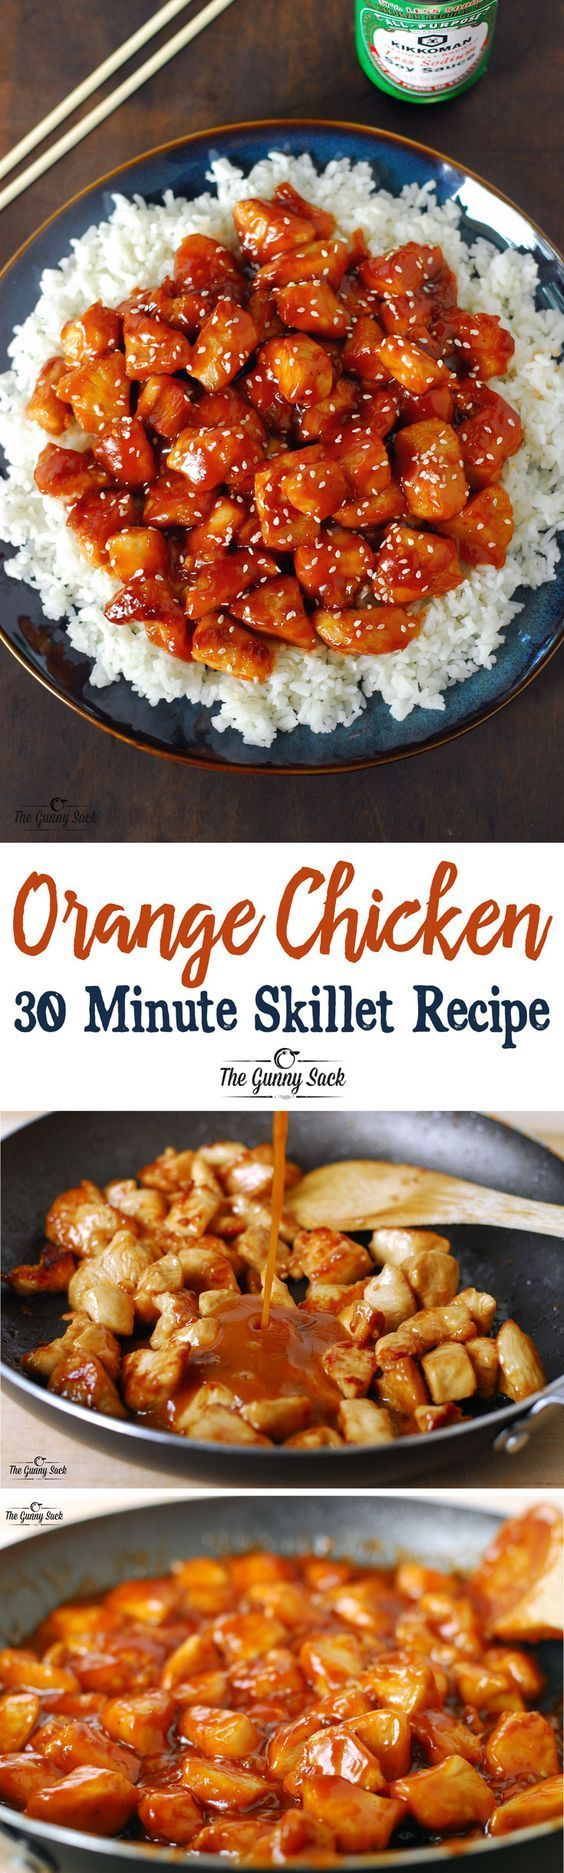 Orange Chicken 30 Minute Skillet Recipe: A easy dinner idea that is family…